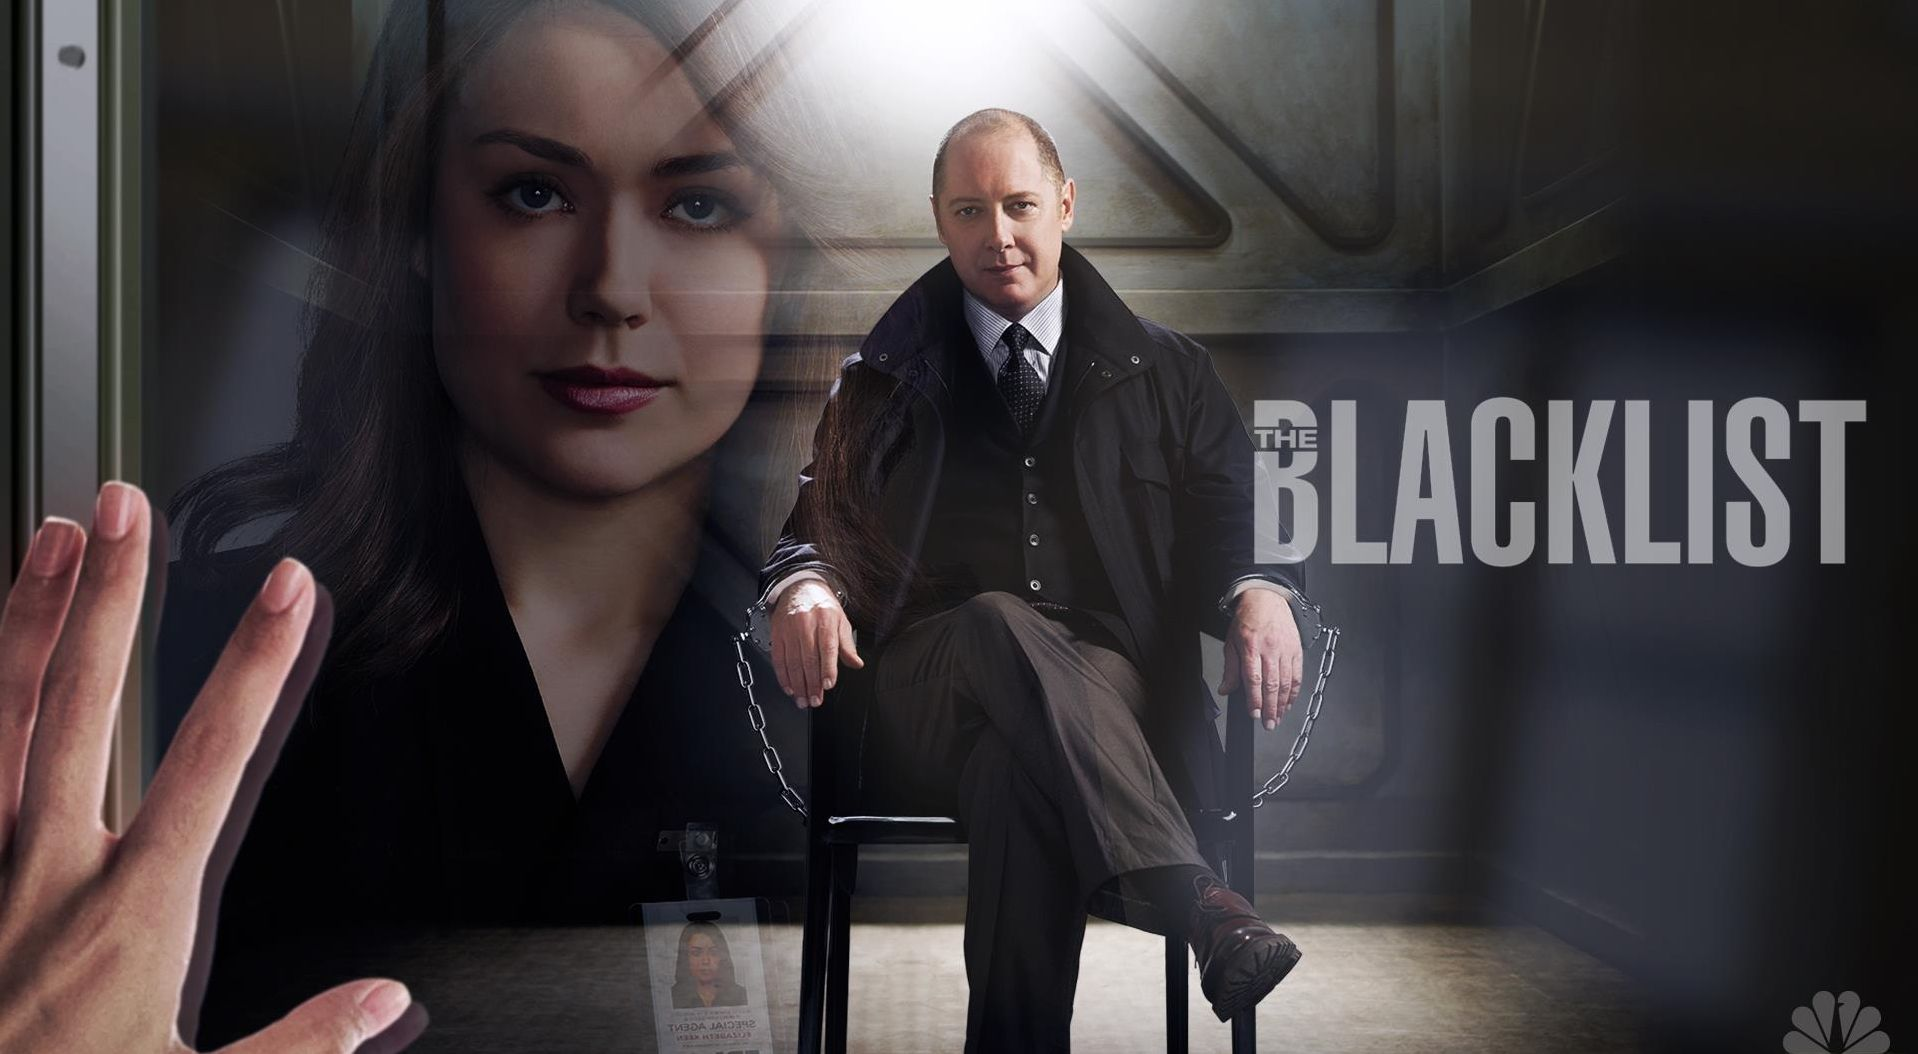 The Blacklist Wallpapers High Resolution and Quality Download